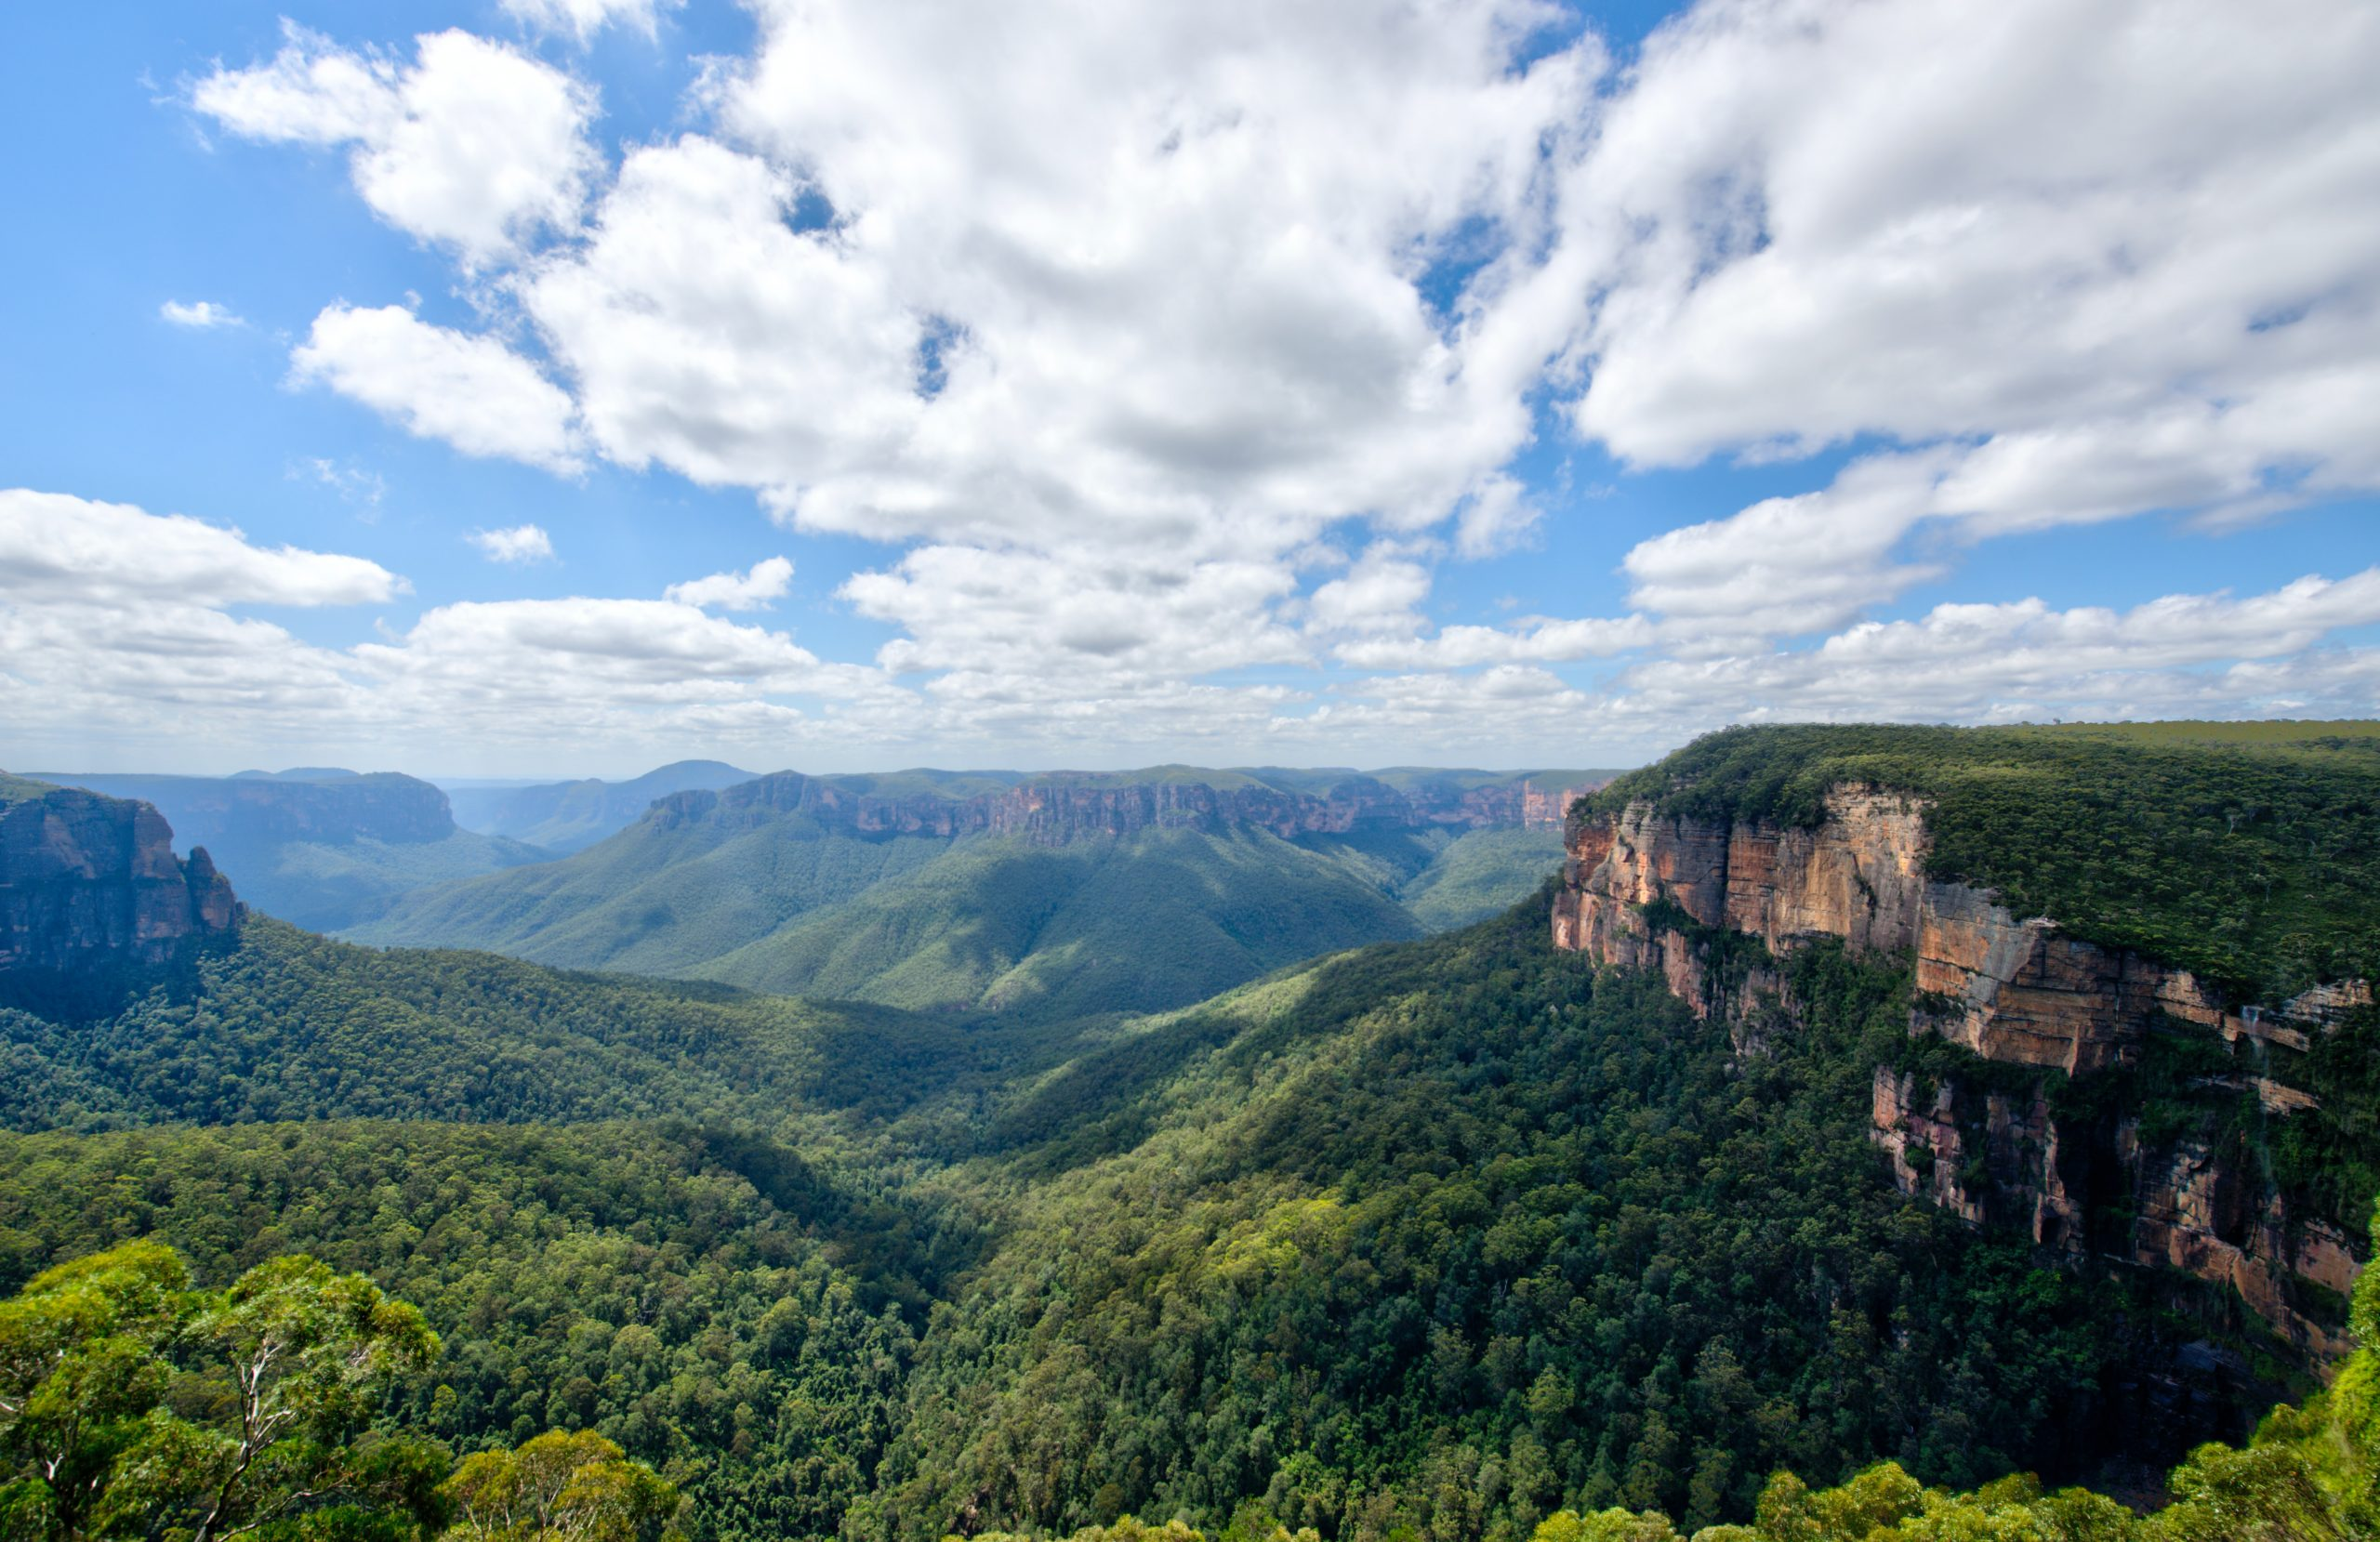 The Blue Mountains sweeping landscape